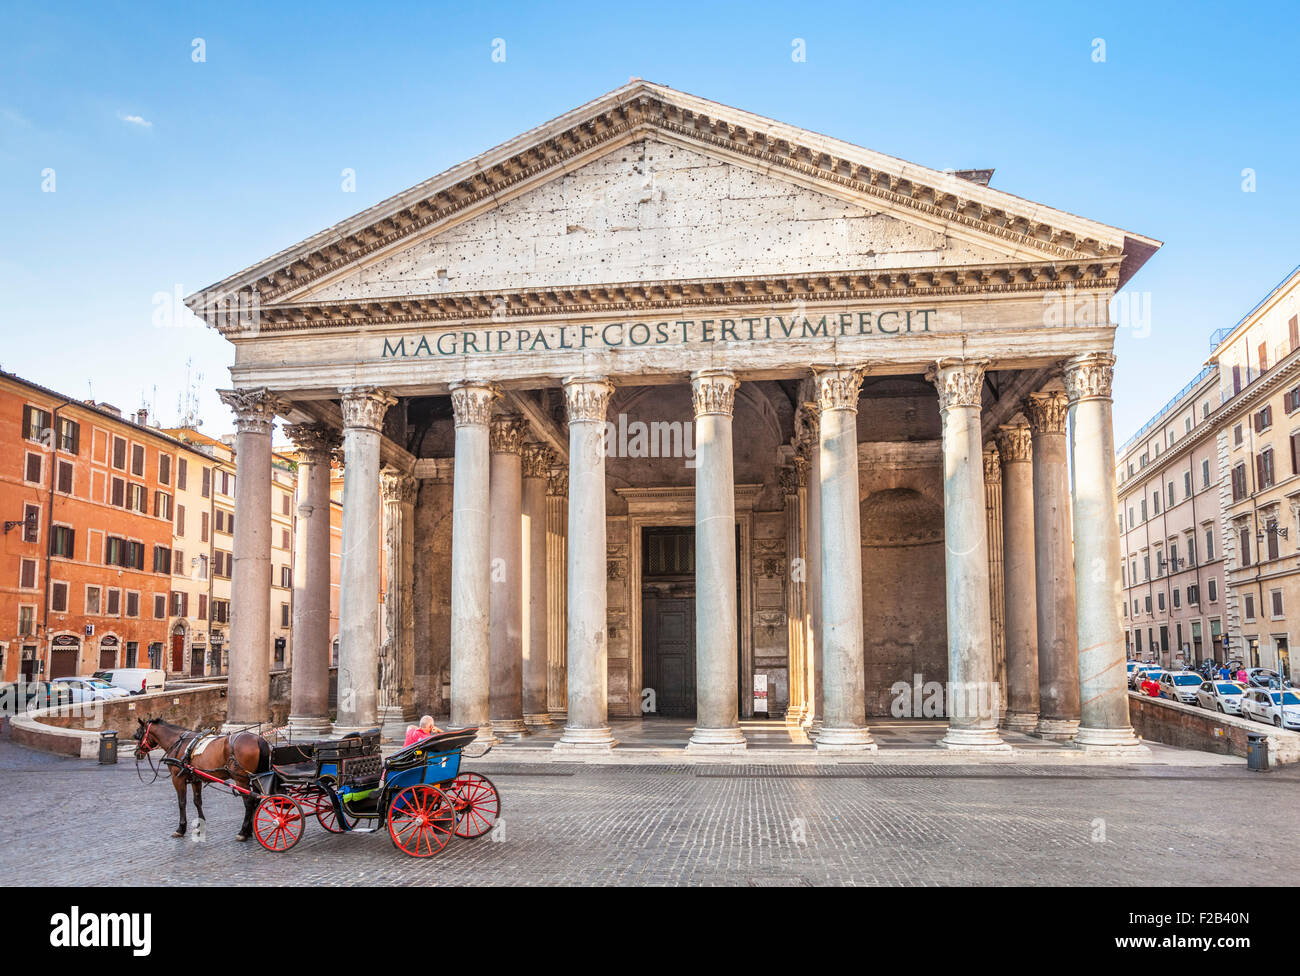 The Pantheon temple of Roman Gods and church exterior facade Piazza della Rotonda Roma Rome Lazio Italy EU Europe - Stock Image